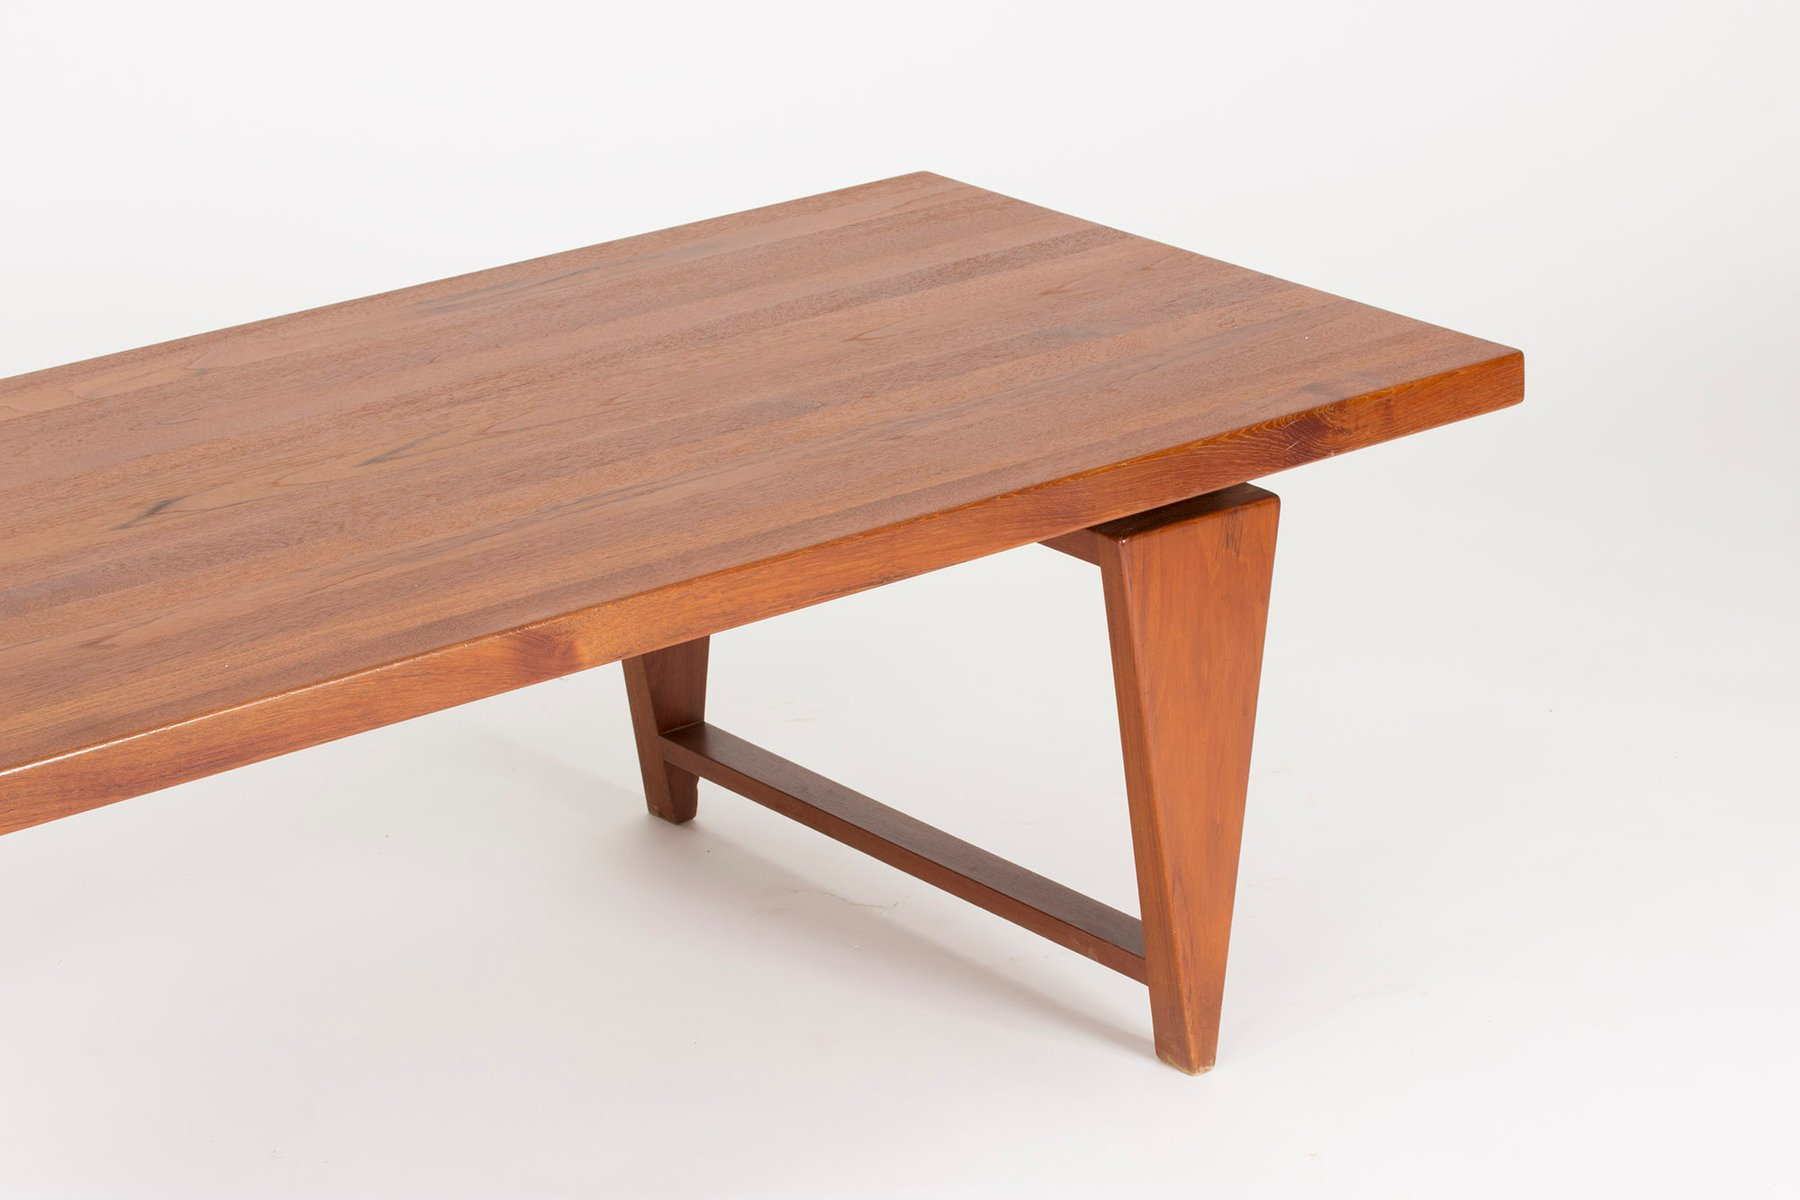 Teak Coffee Table By Illum Wikkels For Mikael Laursen 1960s